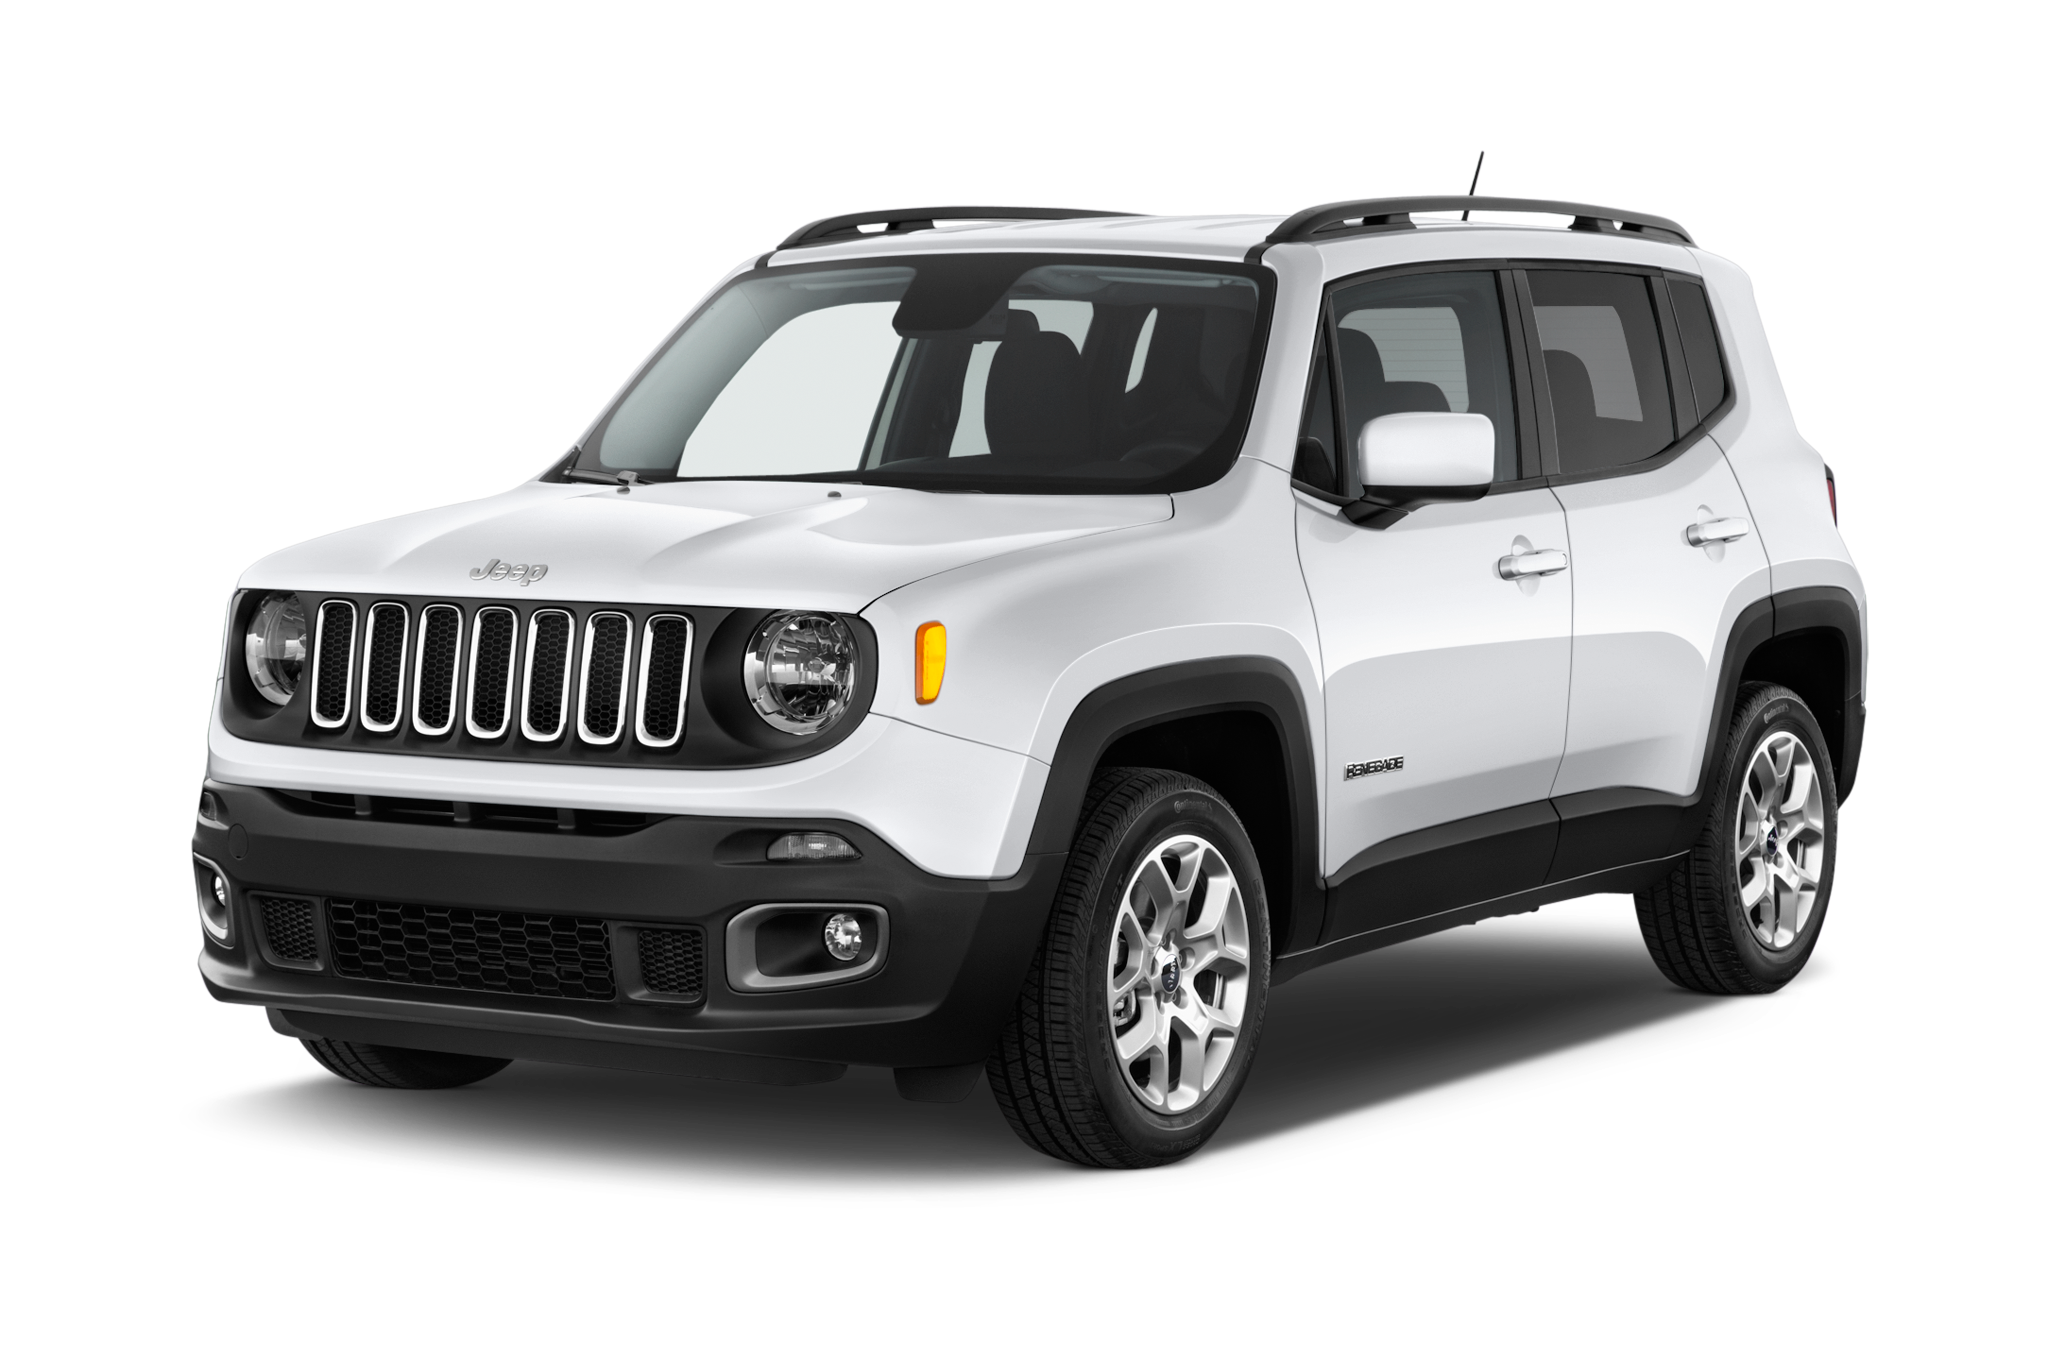 2017 jeep renegade png. Reviews and rating